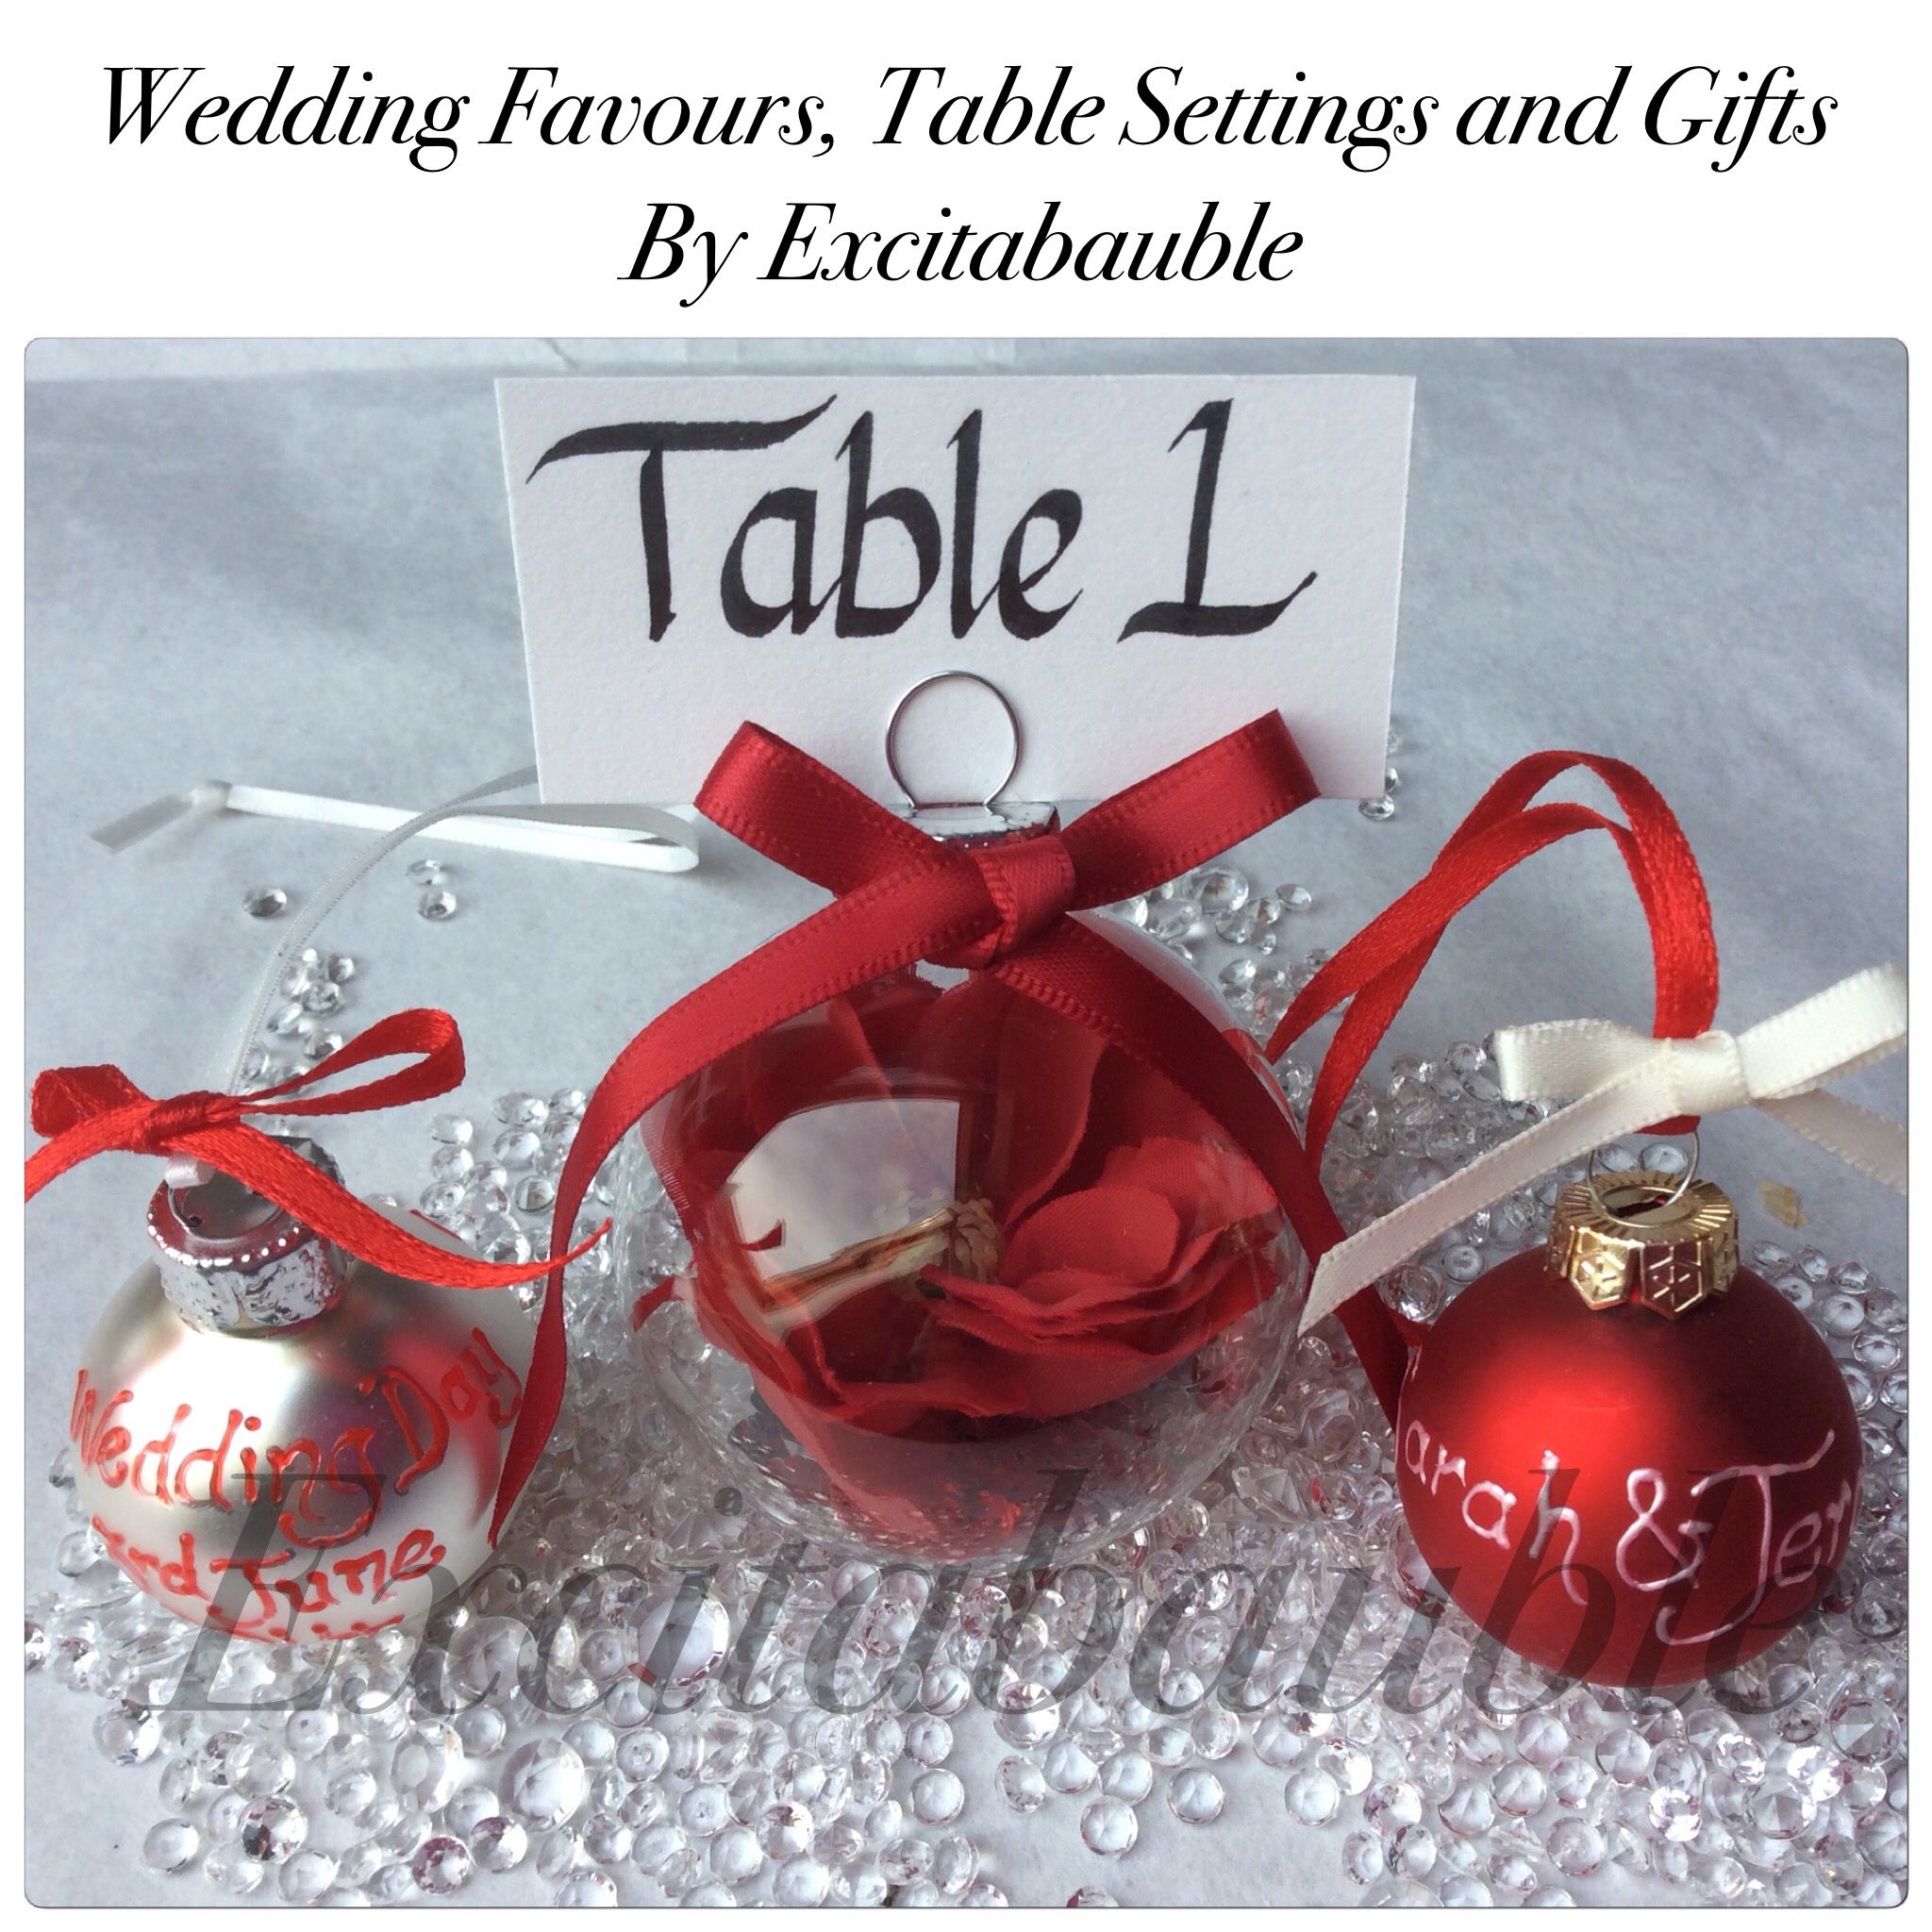 Red Personalised glass Wedding Favours, Table Settings and Gifts www.excitabauble.co.uk